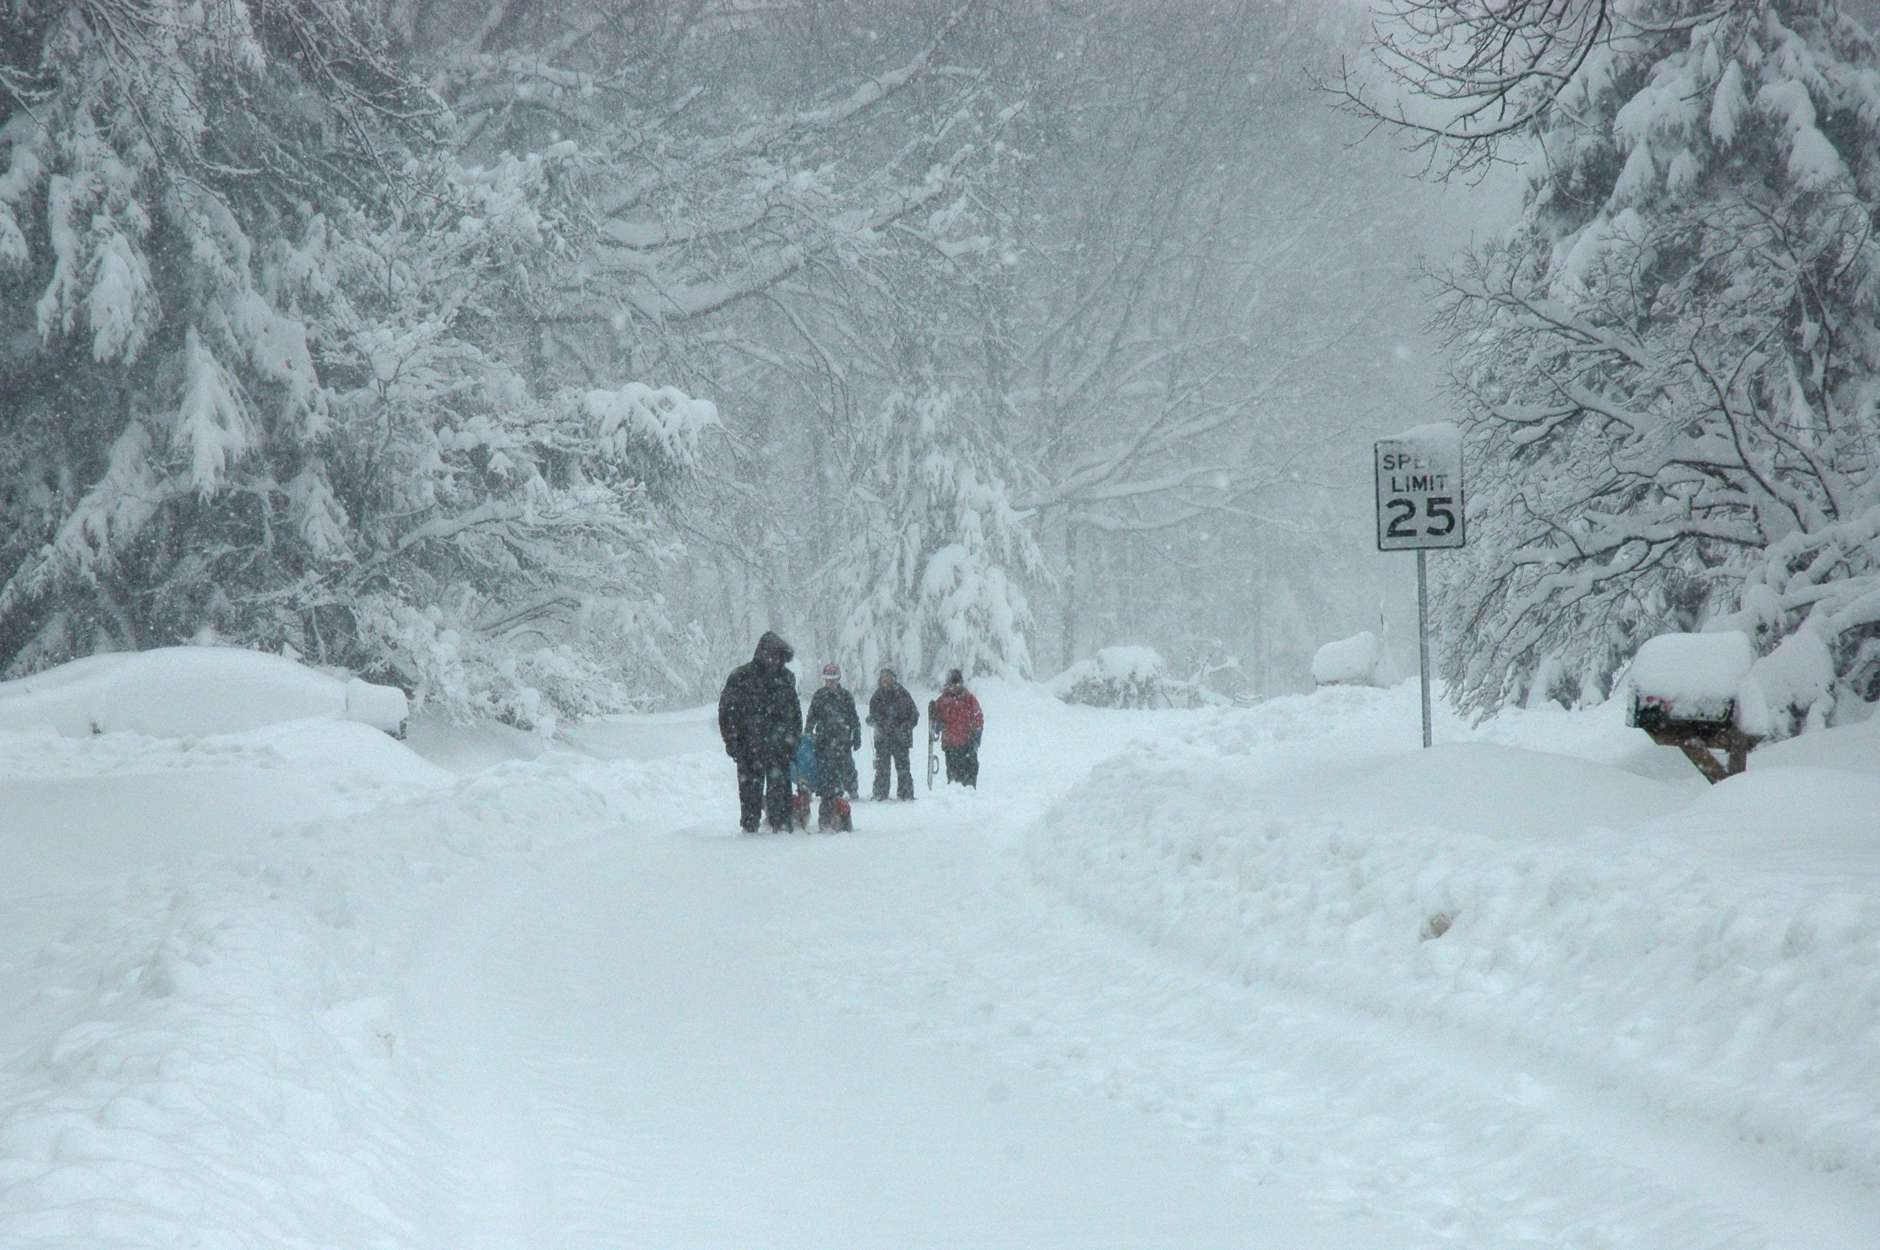 A family walks down a snow-covered street during the February 2010 storm. (WTOP/Dave Dildine)